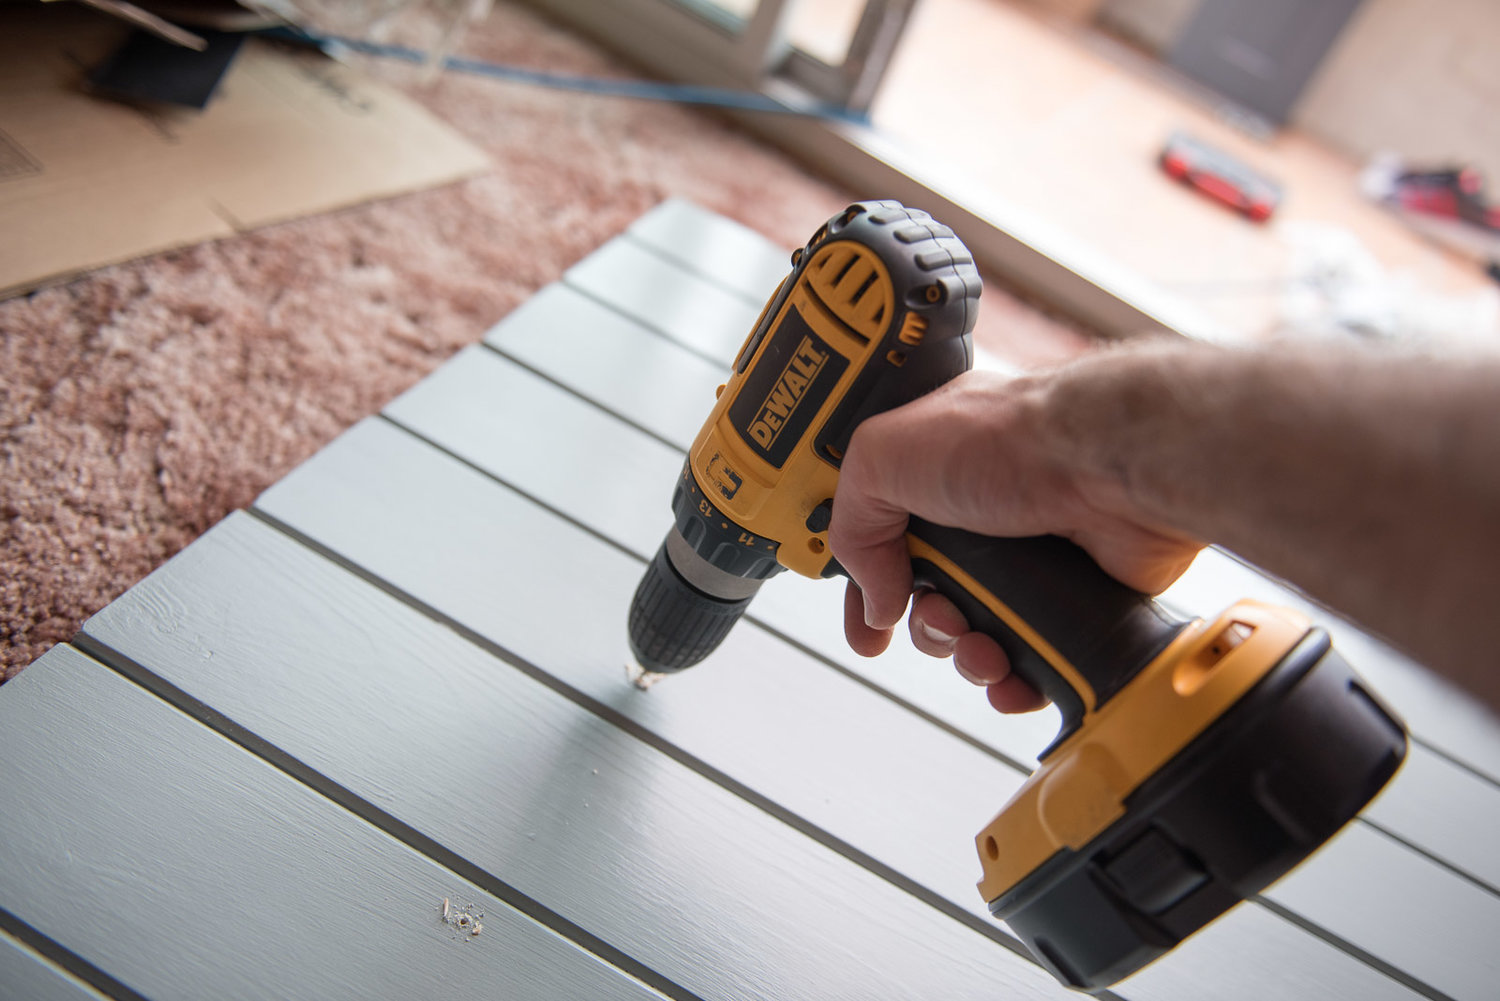 managing dust in a house renovation